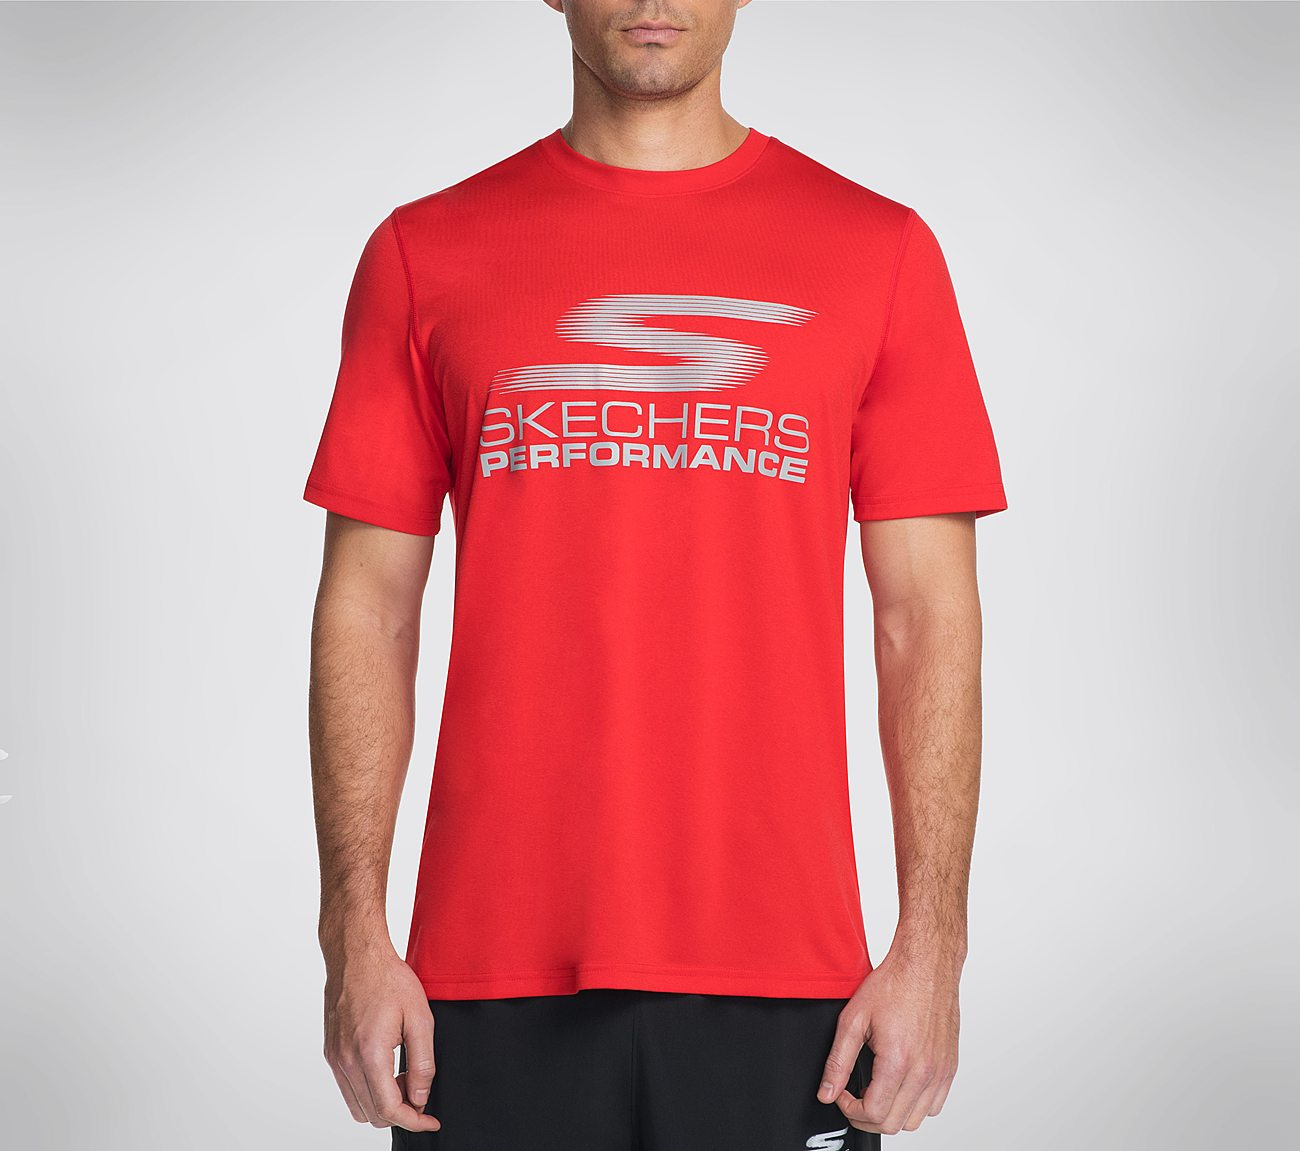 Skechers Wave Logo Tee Shirt Apparel Shoes